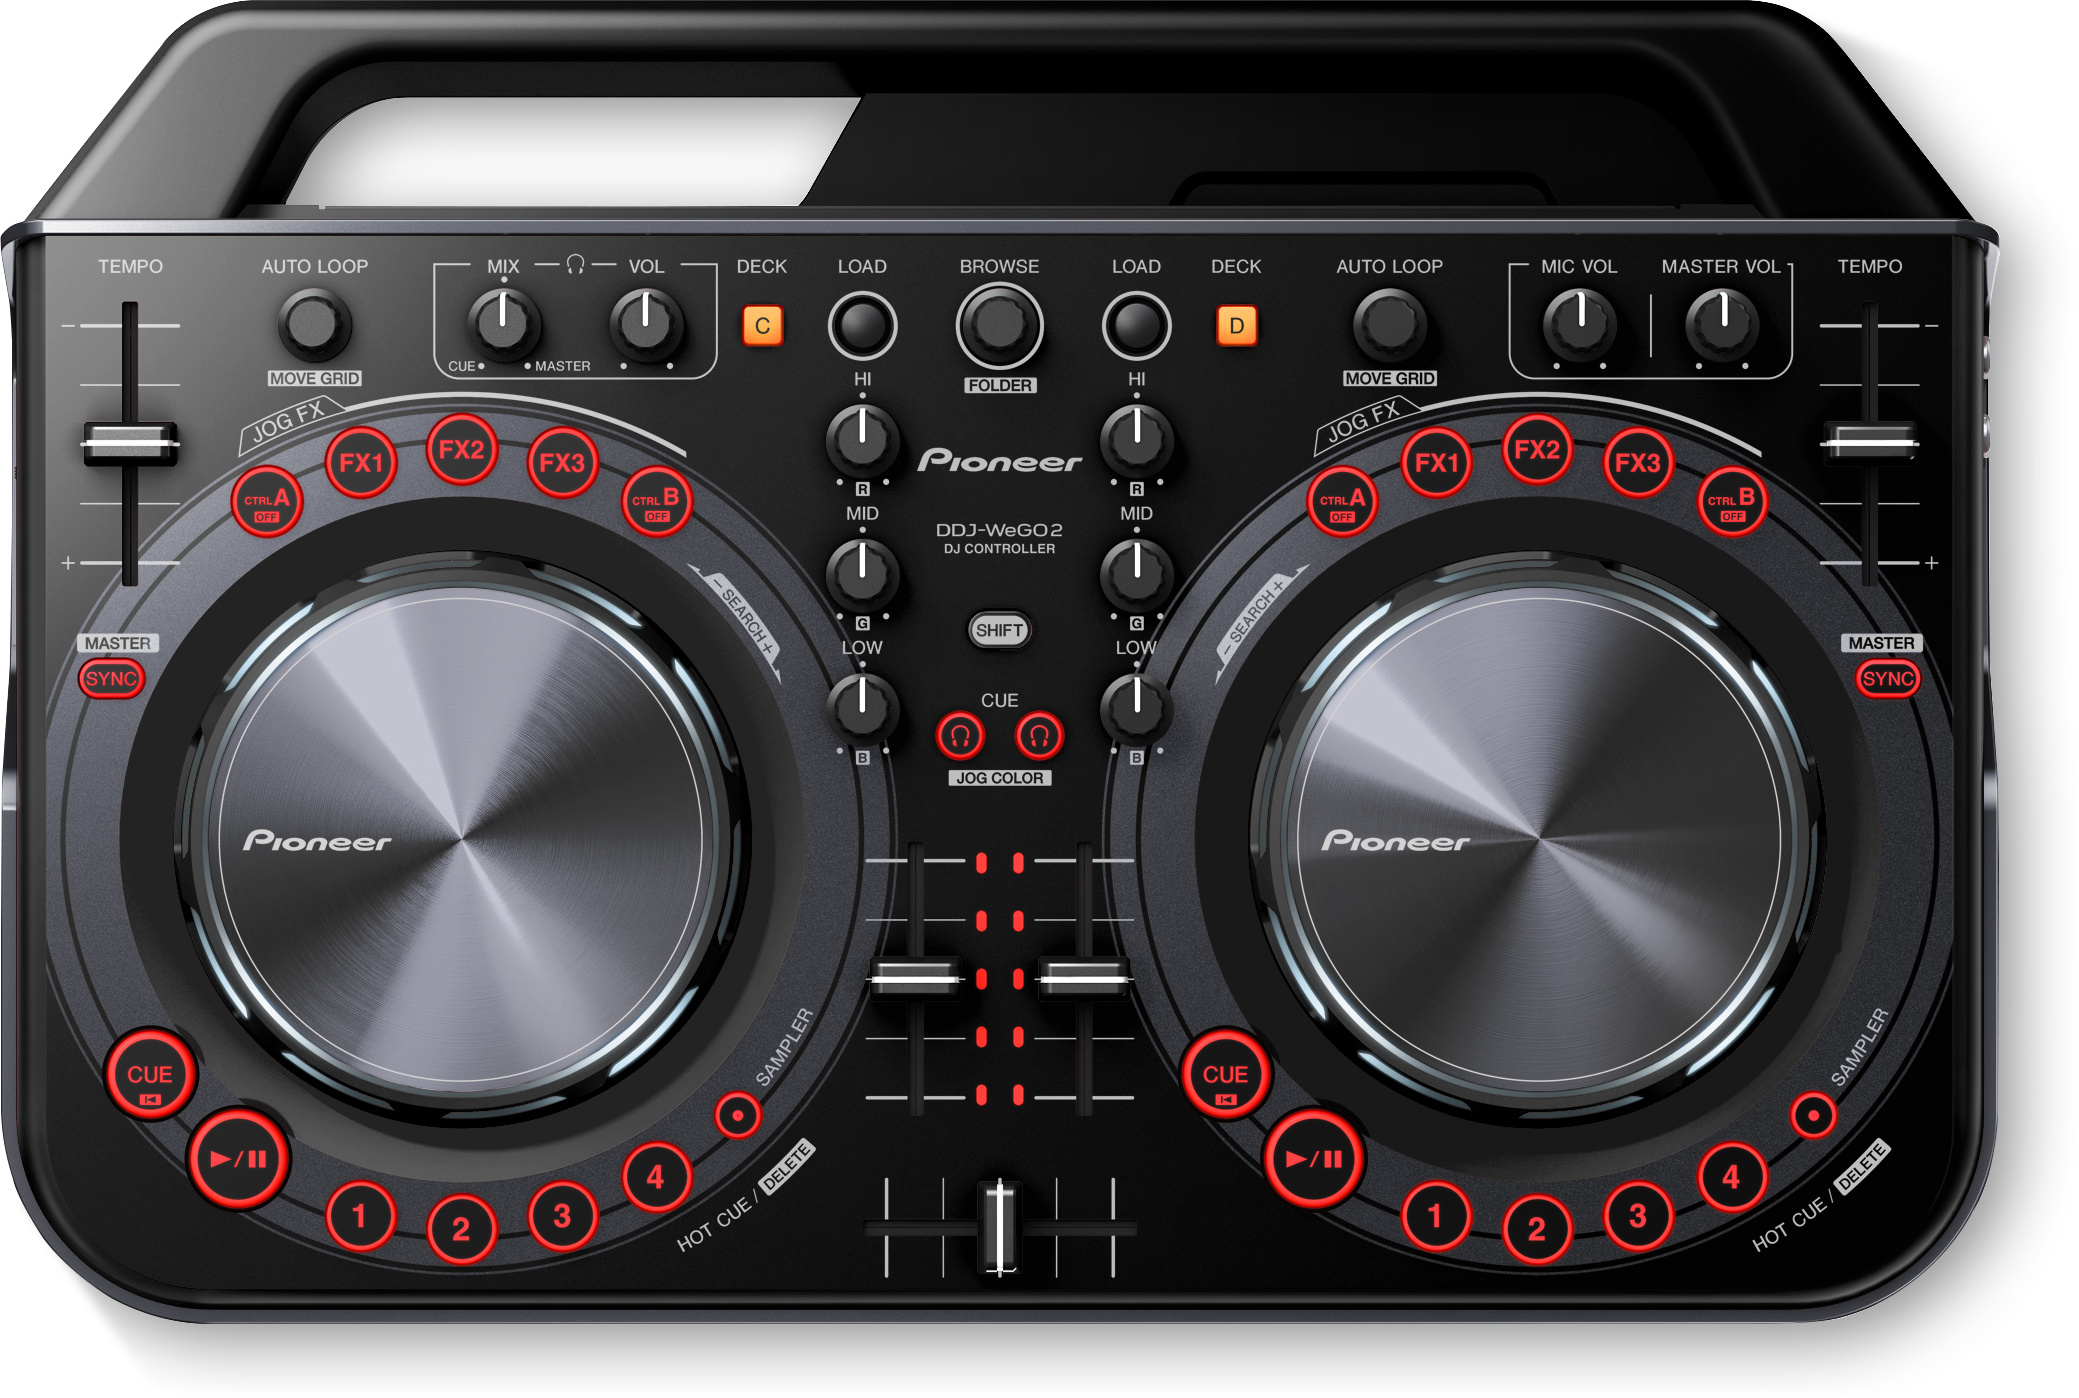 Download firmware or software for DDJ-WeGO2 - Pioneer DJ